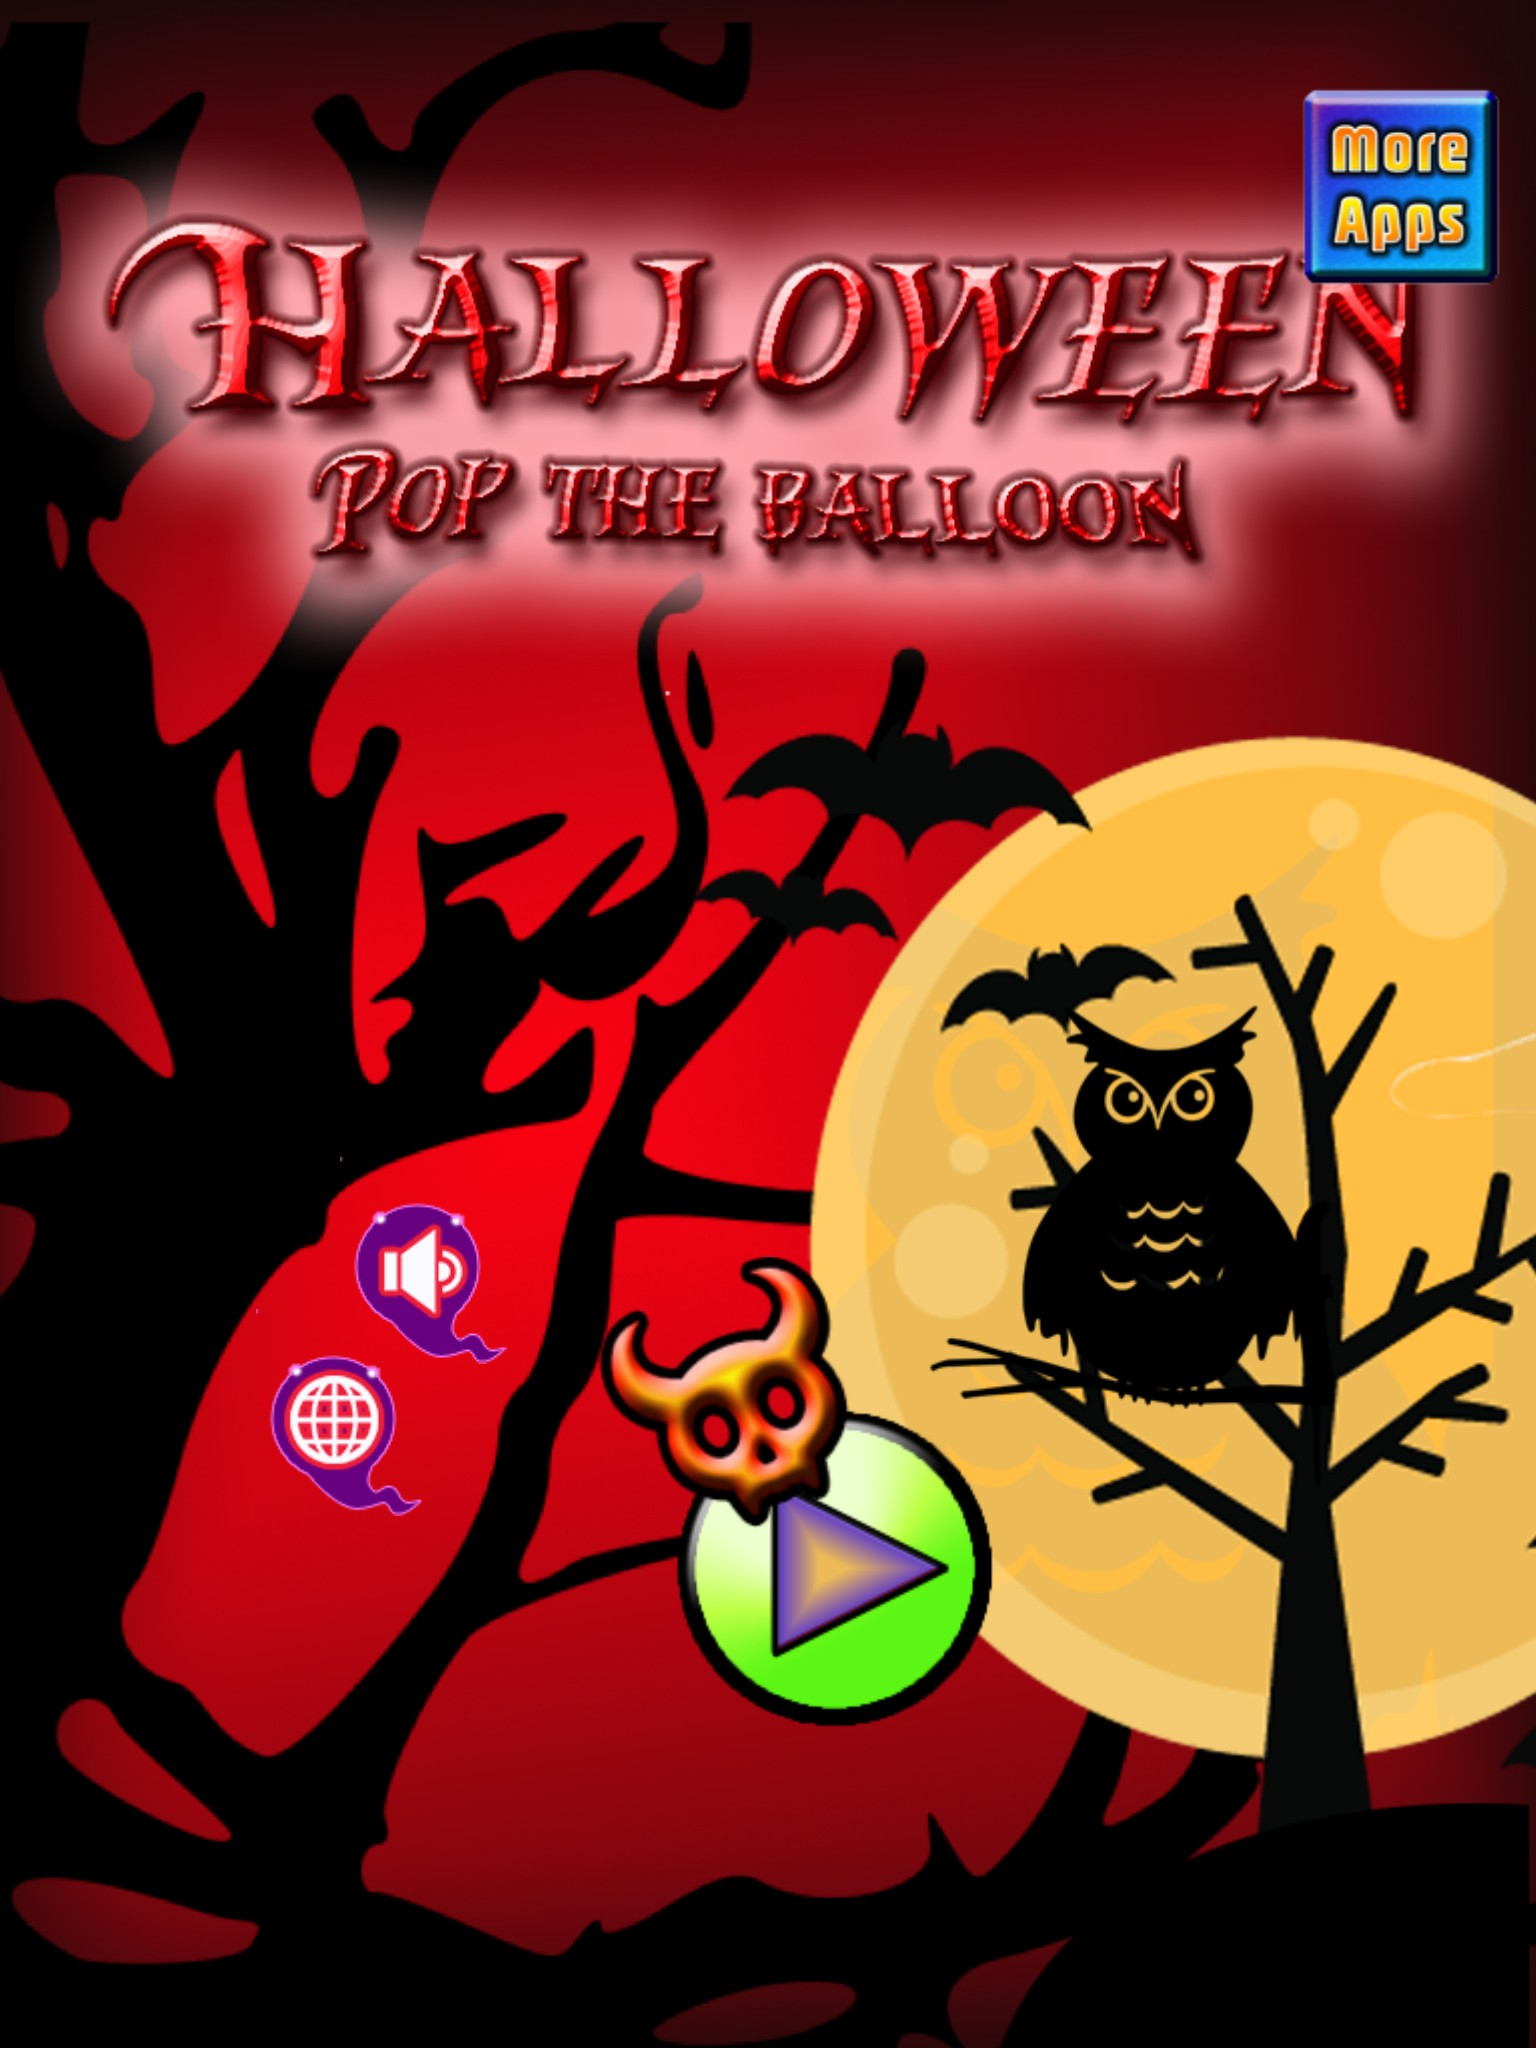 Halloween Pop The Balloon